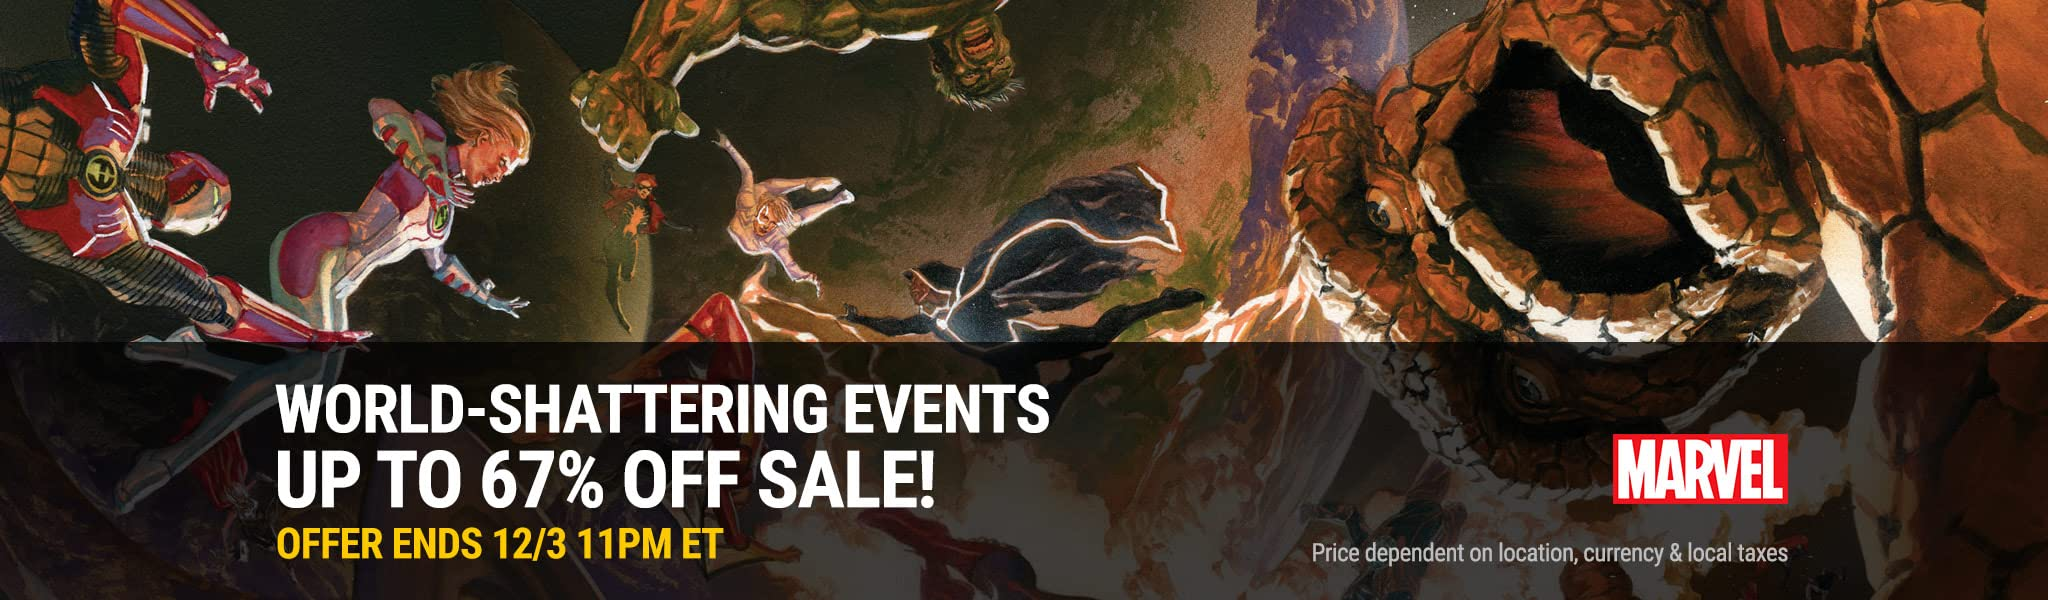 ComiXology offering massive Black Friday sale off Marvel Comics' event comics series